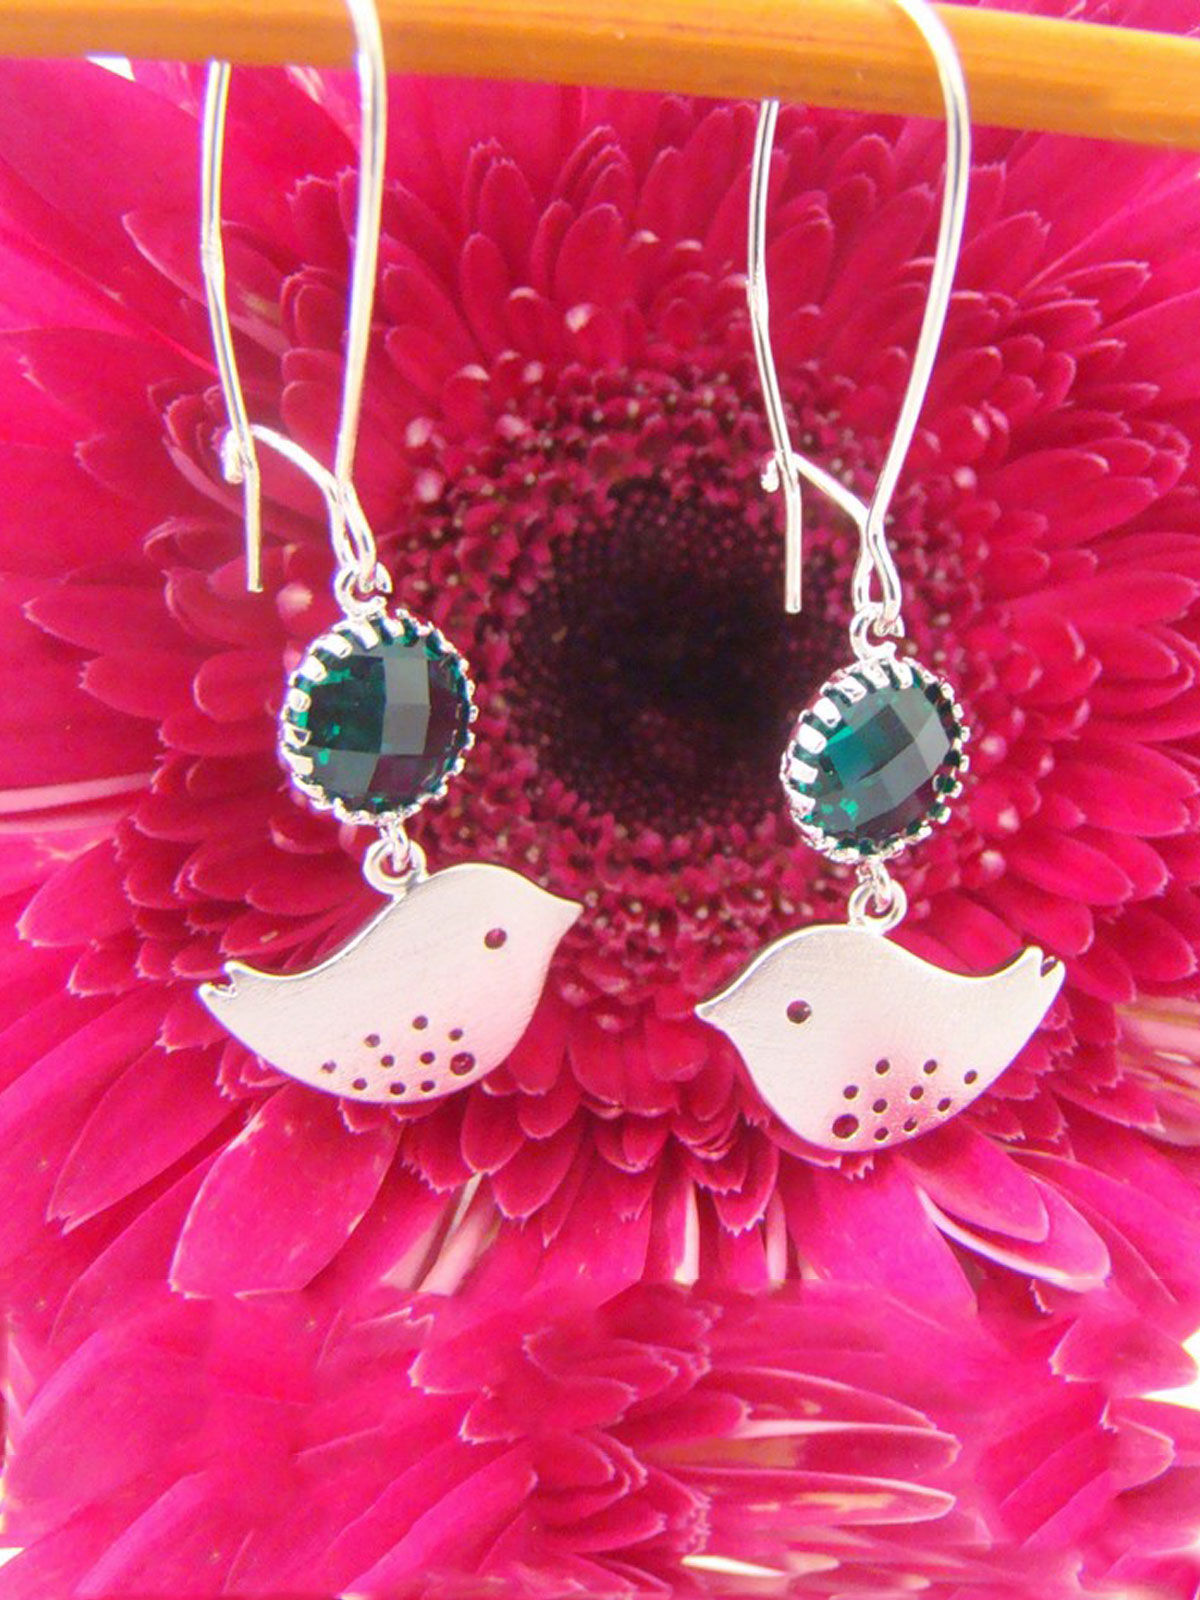 FLY ME HIGH - SPARROW BIRD EARRINGS